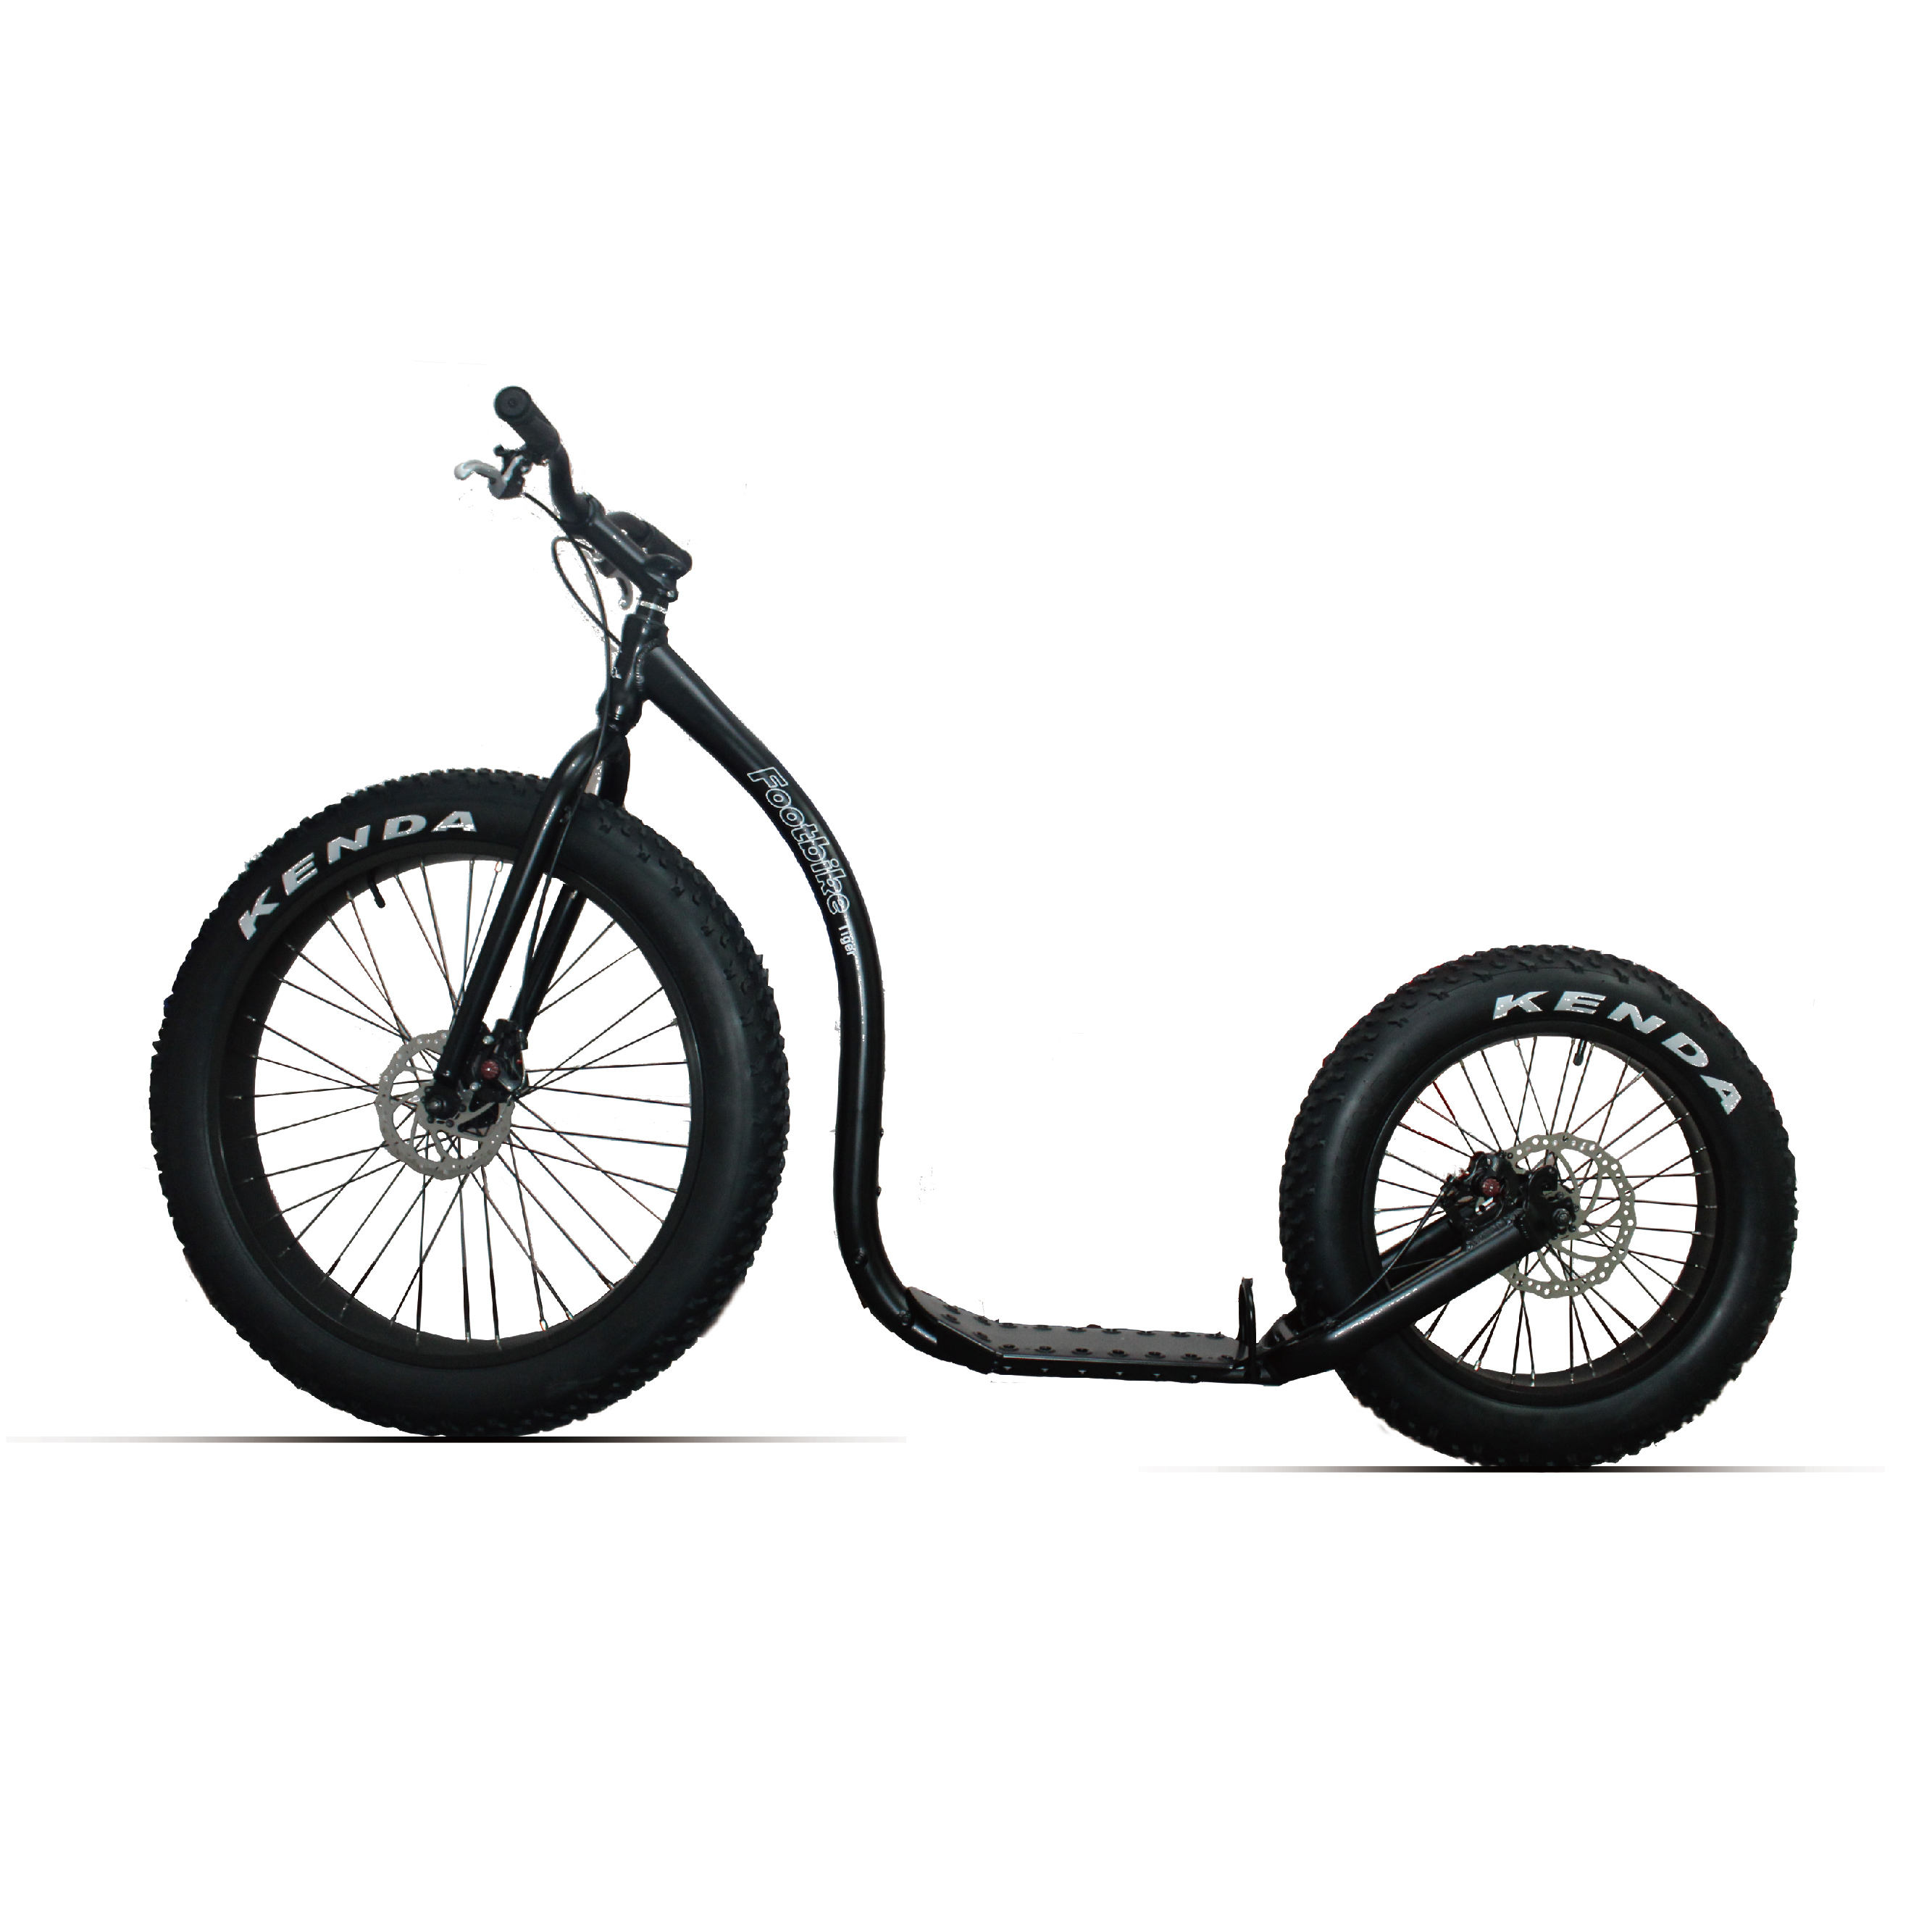 "FOOTBIKE - FAT Wheel Scooter KICKBIKE ADULT DOG SCOOTER 26""*4.0-Tiger(stock)"